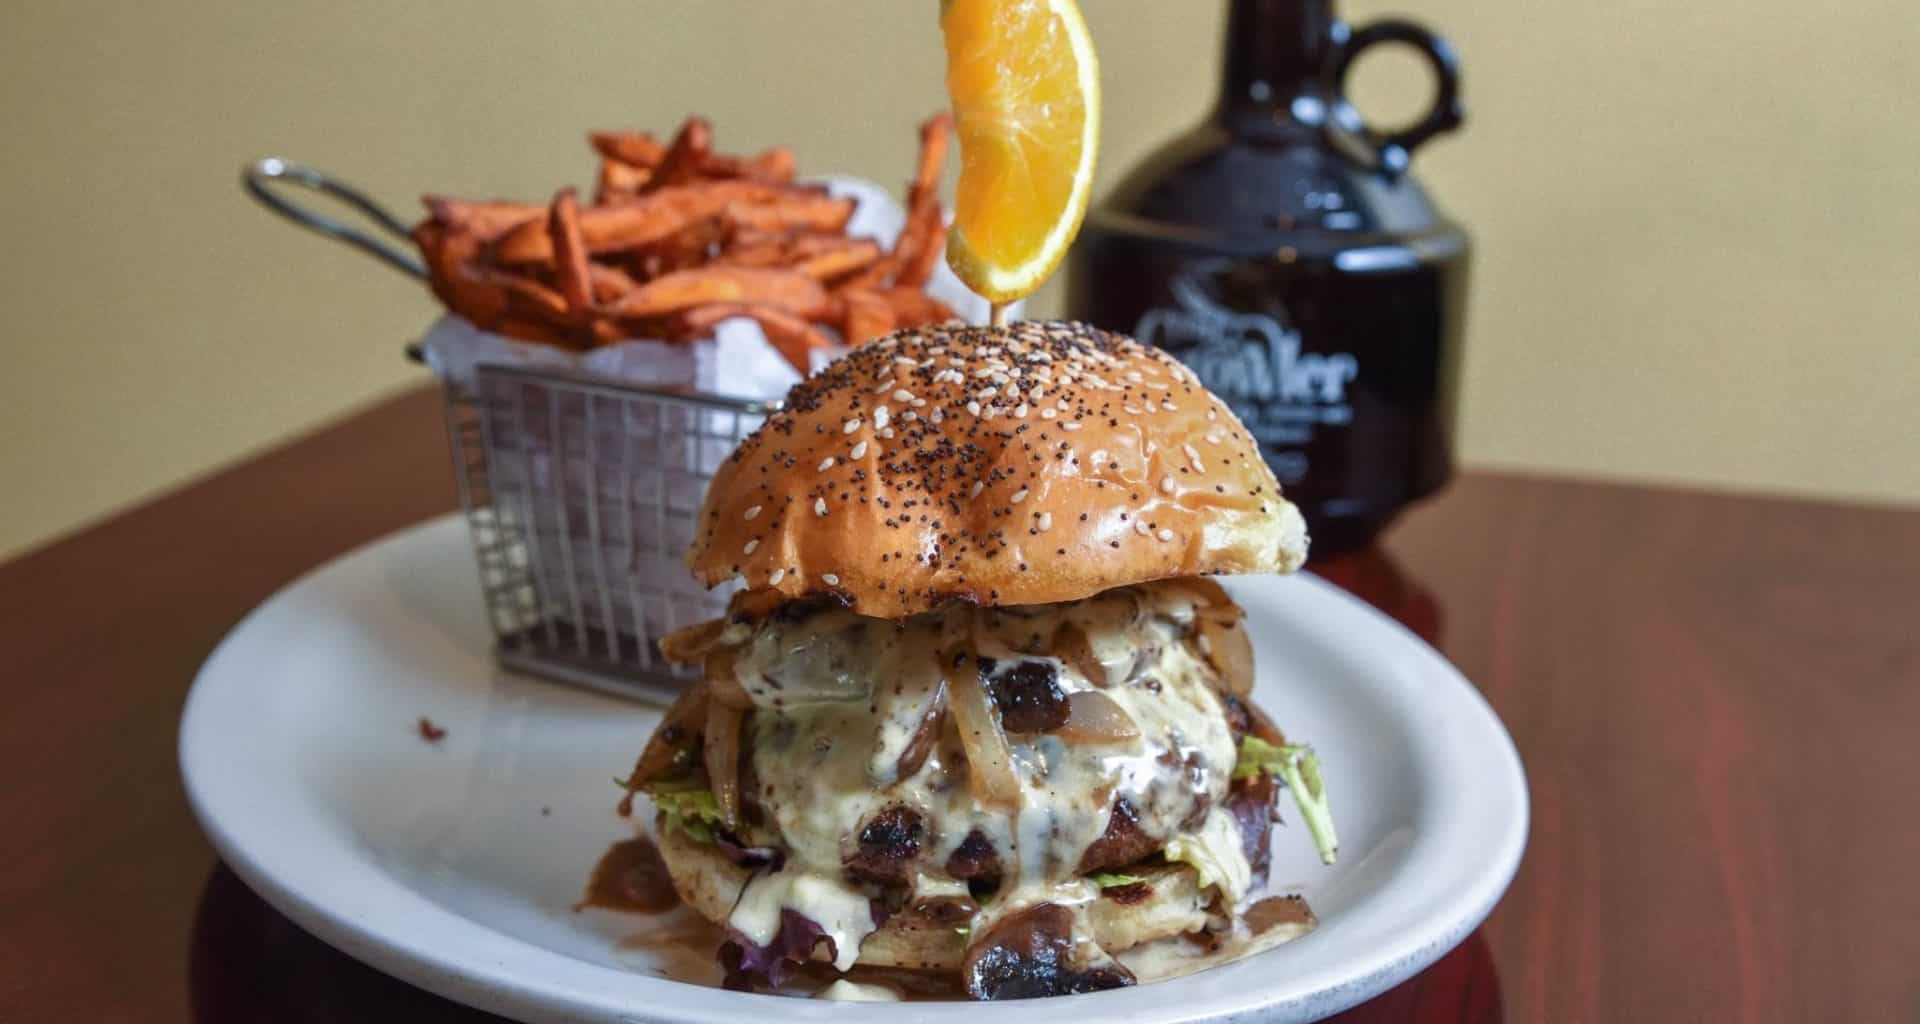 Best Burgers for Cheat Days in Miami